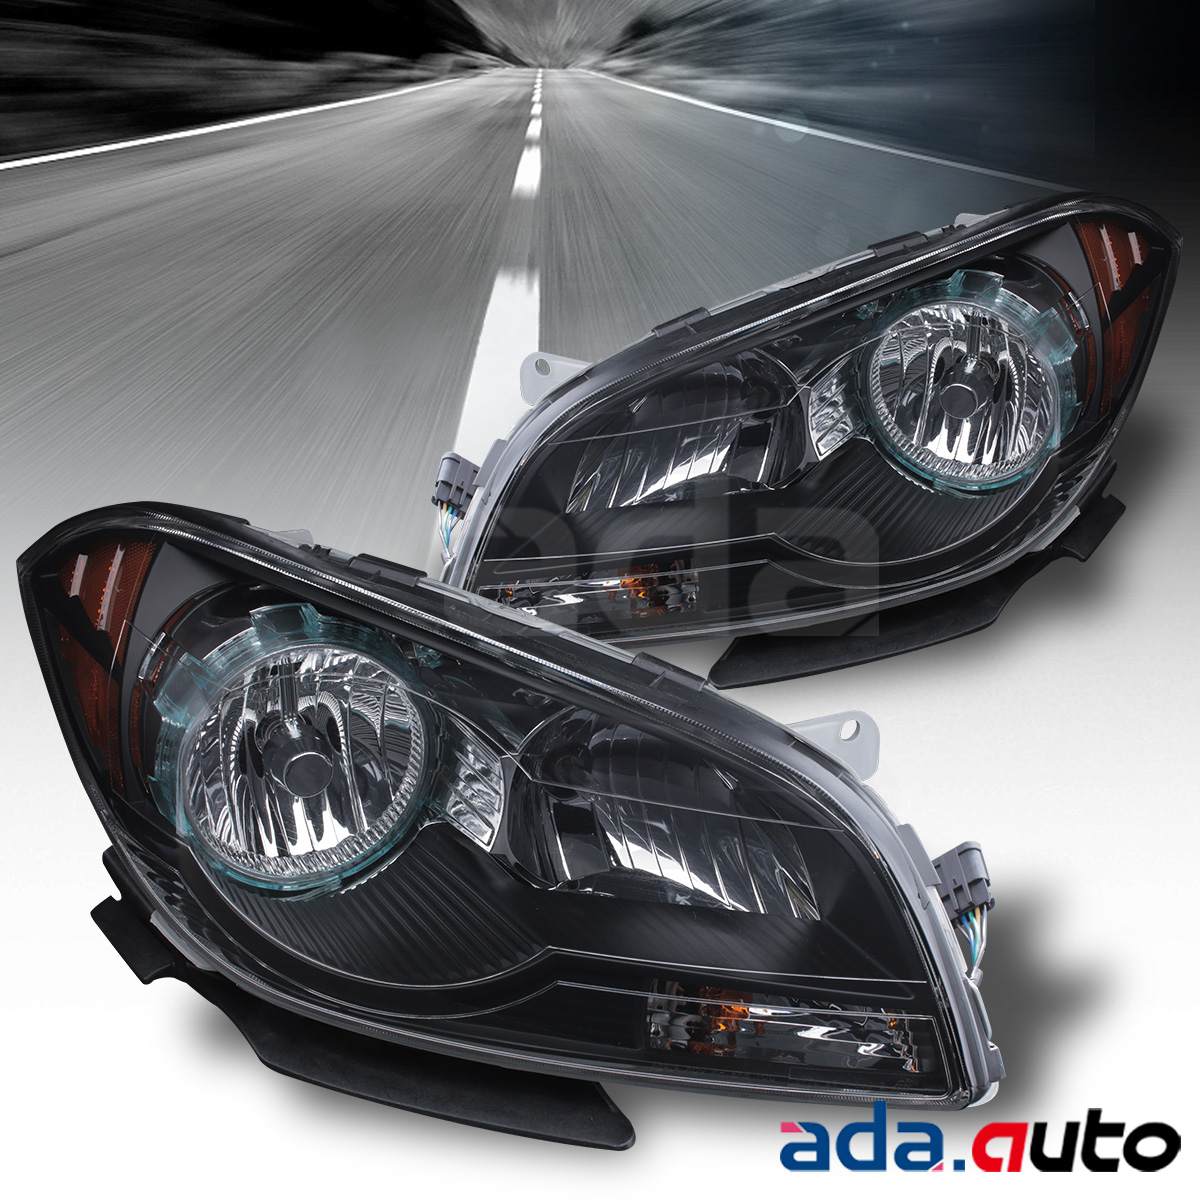 Chevy Malibu Front Lights: Black Replacement Headlights Headlamps For 2008-2012 Chevy